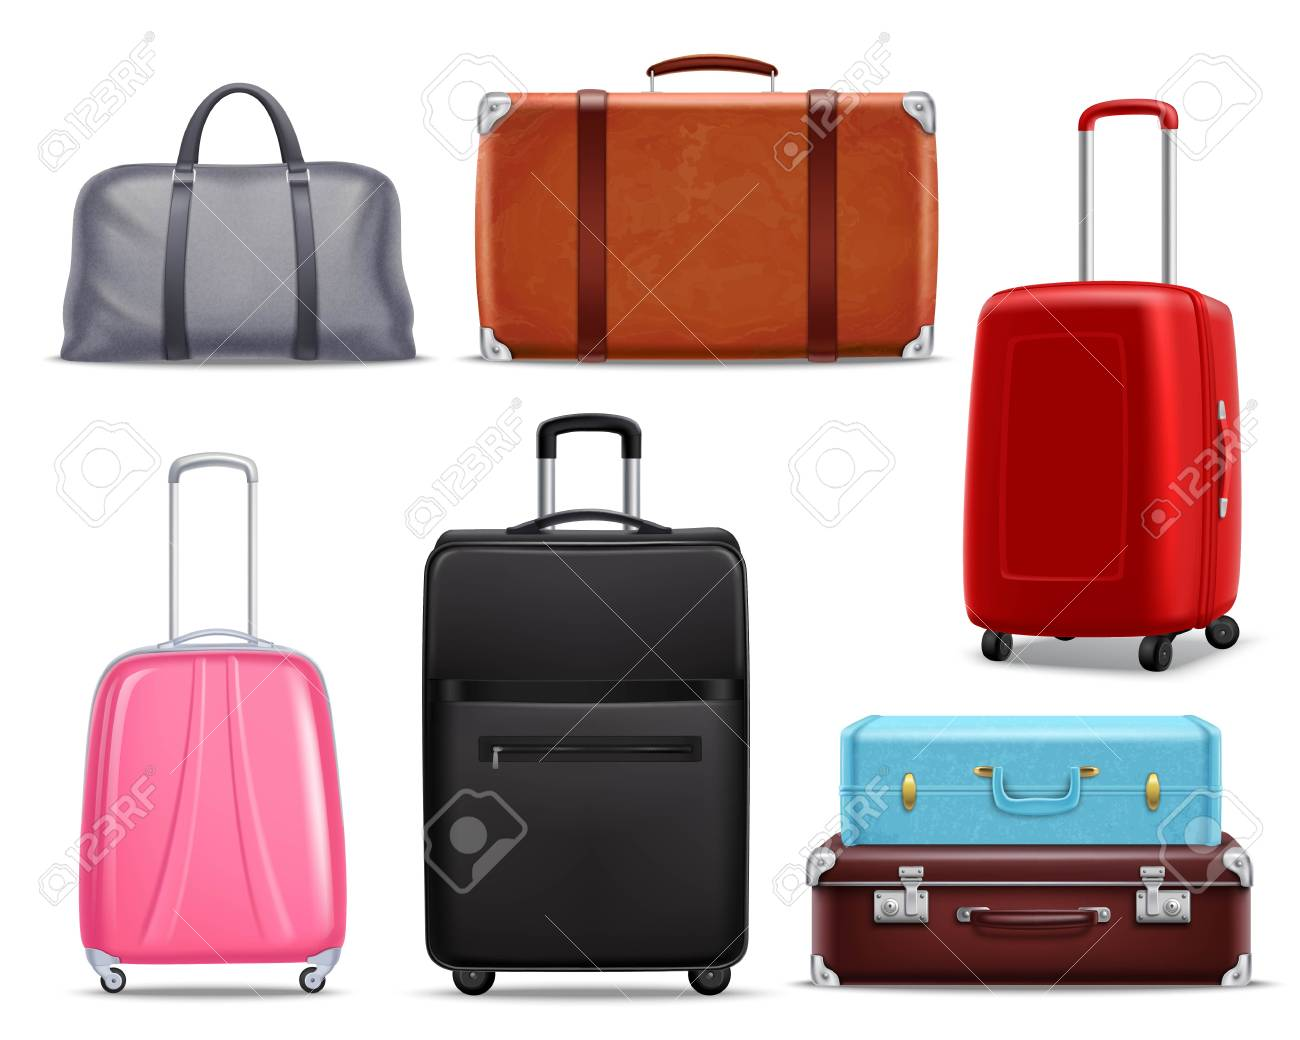 Business and family vacation travel luggage with handbag baggage modern and retro items collection realistic vector illustration. - 83336656